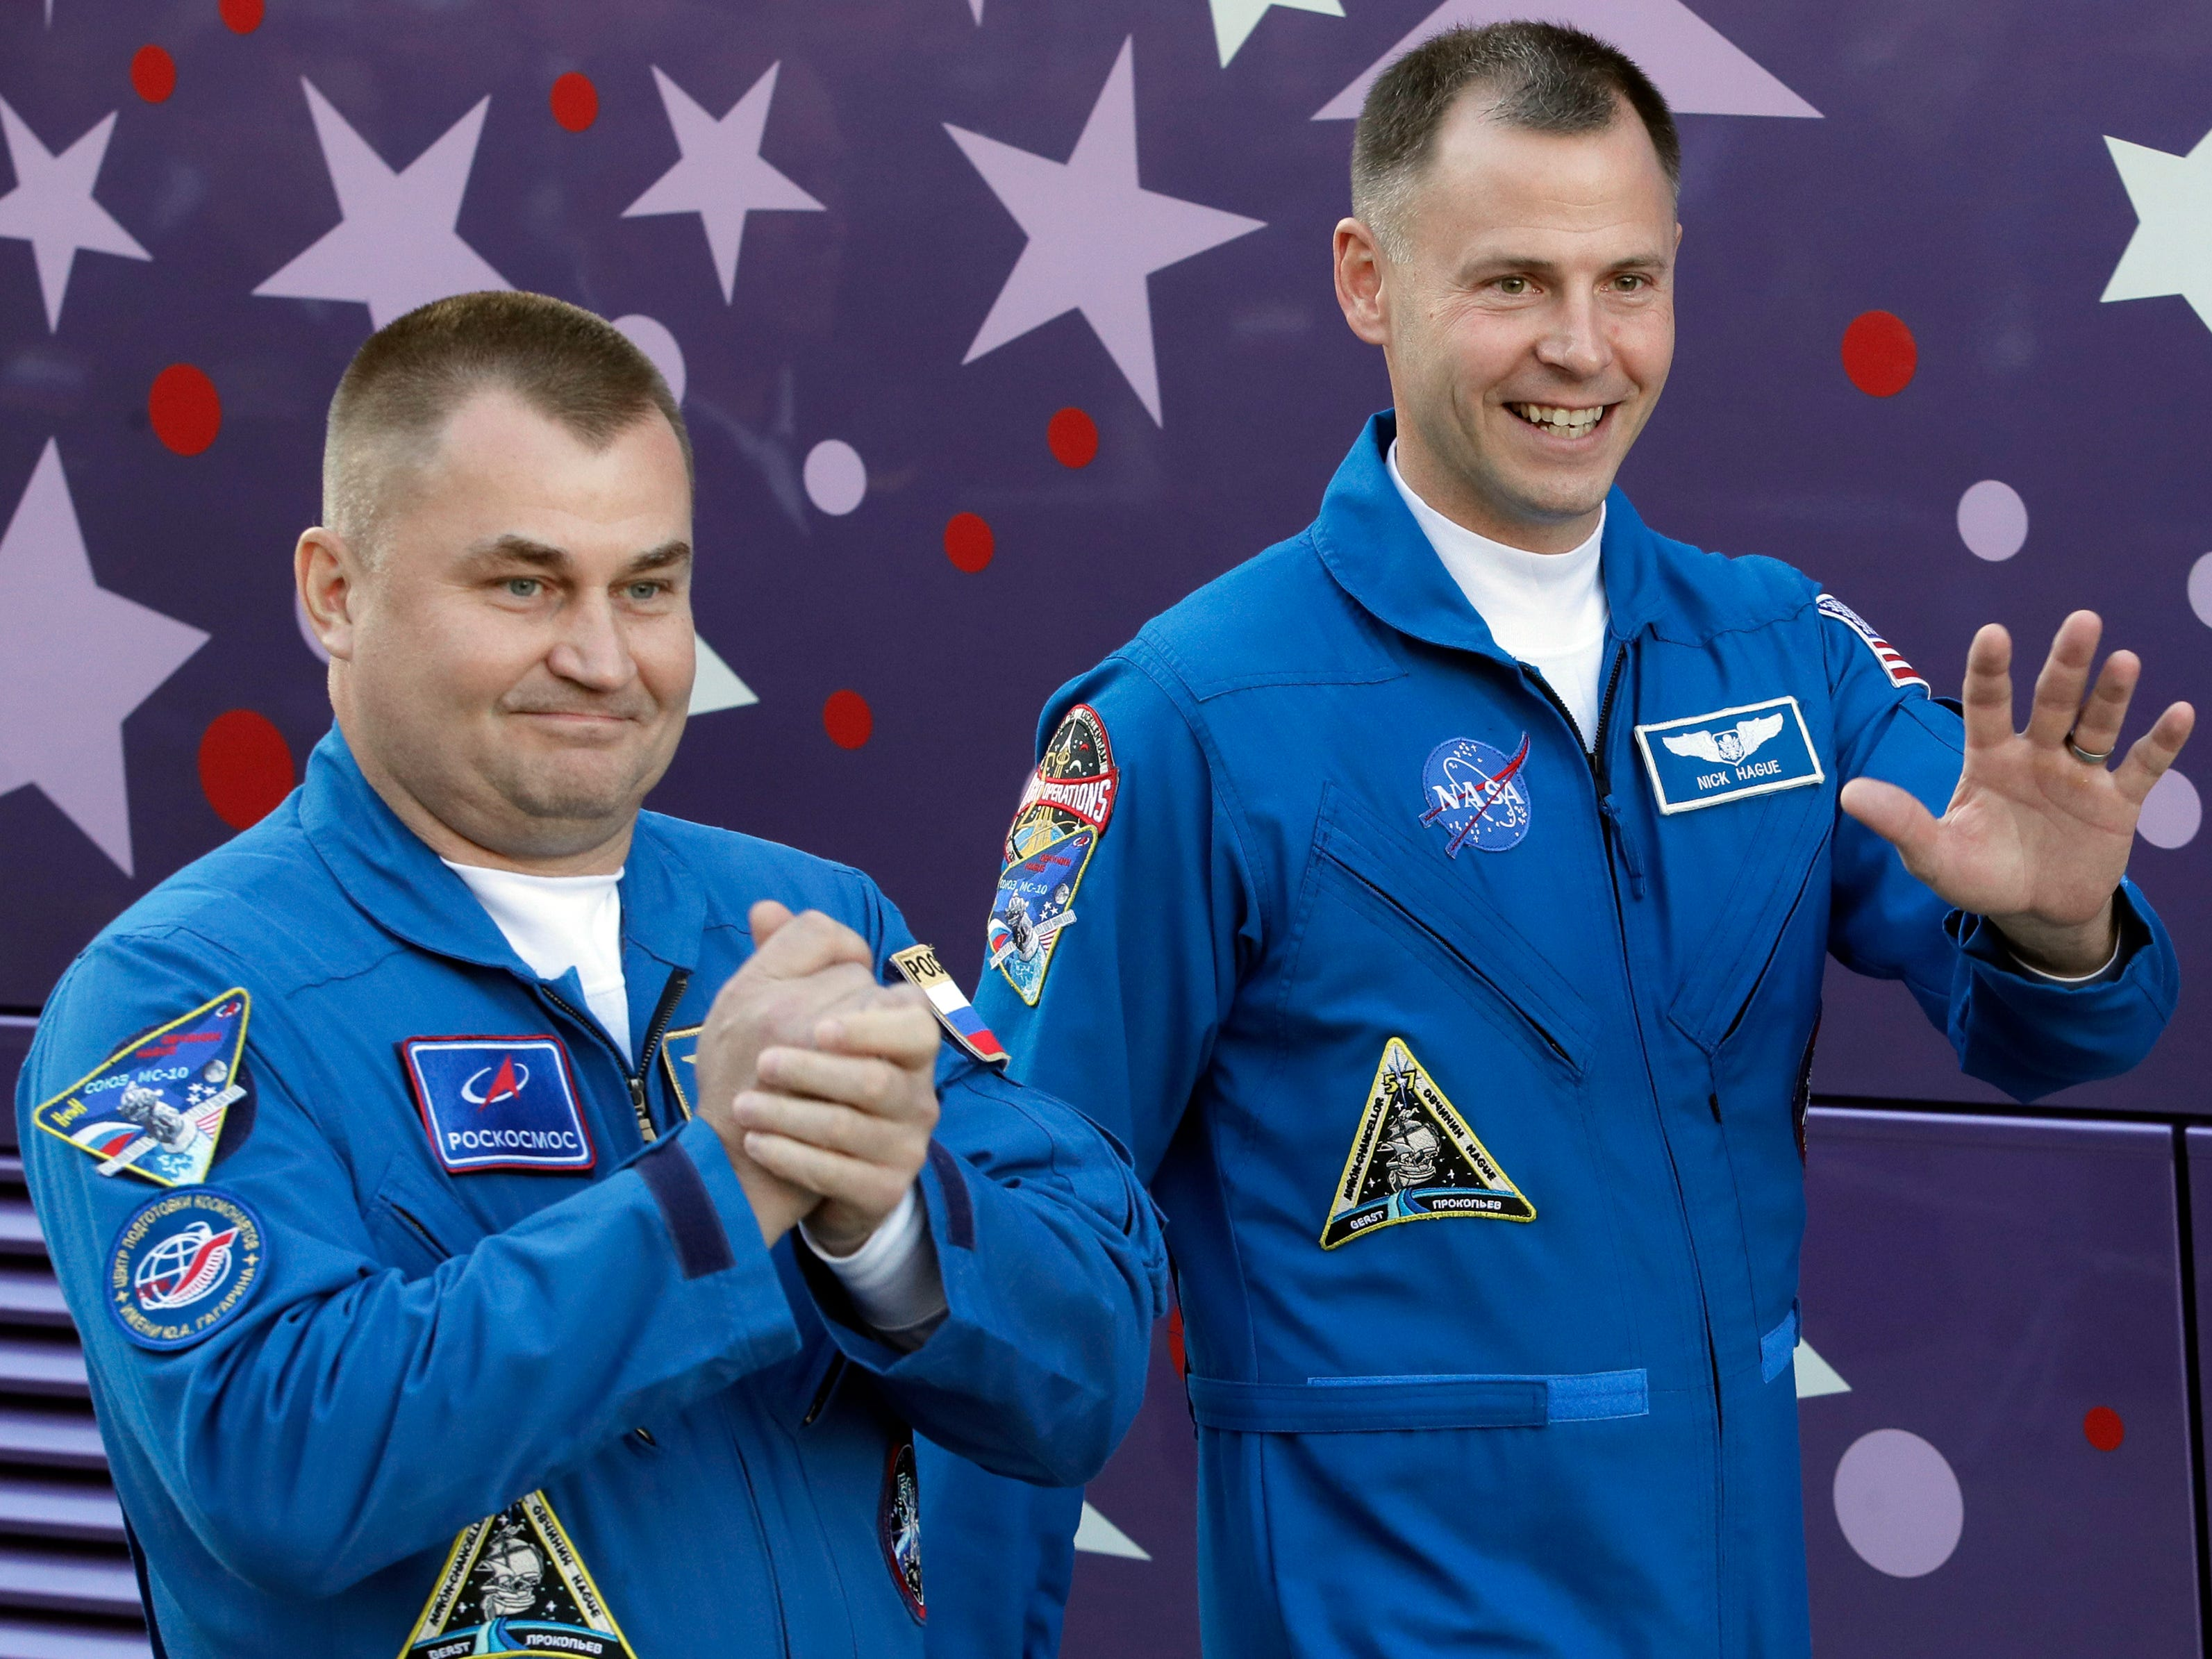 CORRECTS POSITION OF ASTRONAUT - U.S. astronaut Nick Hague, right, and Russian cosmonaut Alexey Ovchinin, members of the main crew to the International Space Station (ISS), wave to their relatives walking to a bus prior to the launch of Soyuz-FG rocket at the Russian leased Baikonur cosmodrome, Kazakhstan, Thursday, Oct. 11, 2018. (AP Photo/Dmitri Lovetsky) ORG XMIT: XDL104